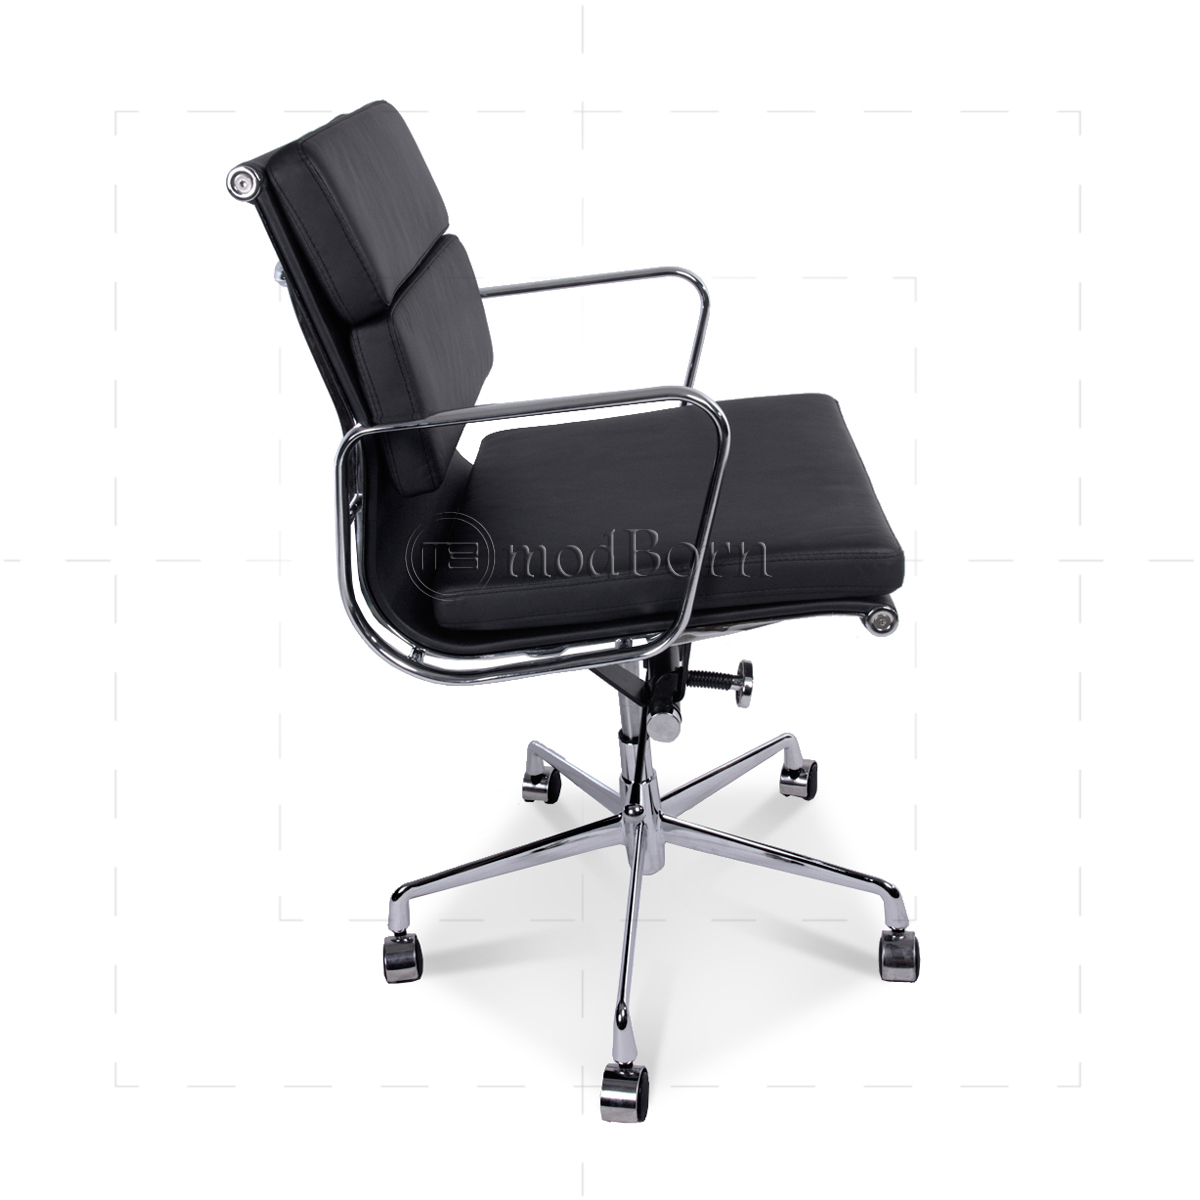 Ea217 Eames Style Office Chair Low Back Soft Pad Black Leather Replica